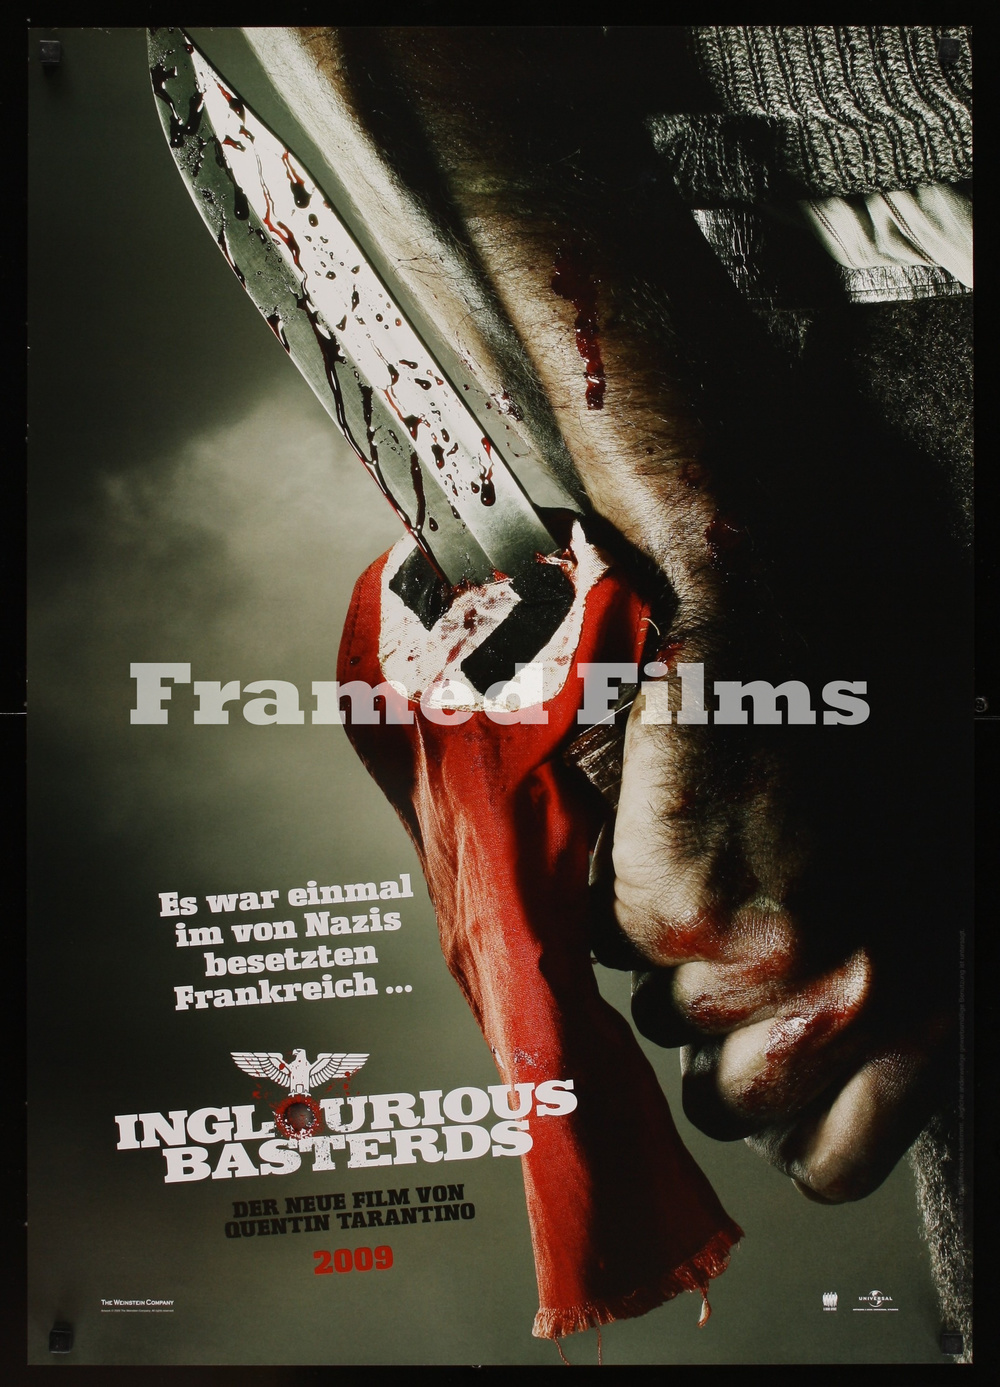 german_a1_inglourious_basterds_teaser_knife_style_NZ03455_L.jpg